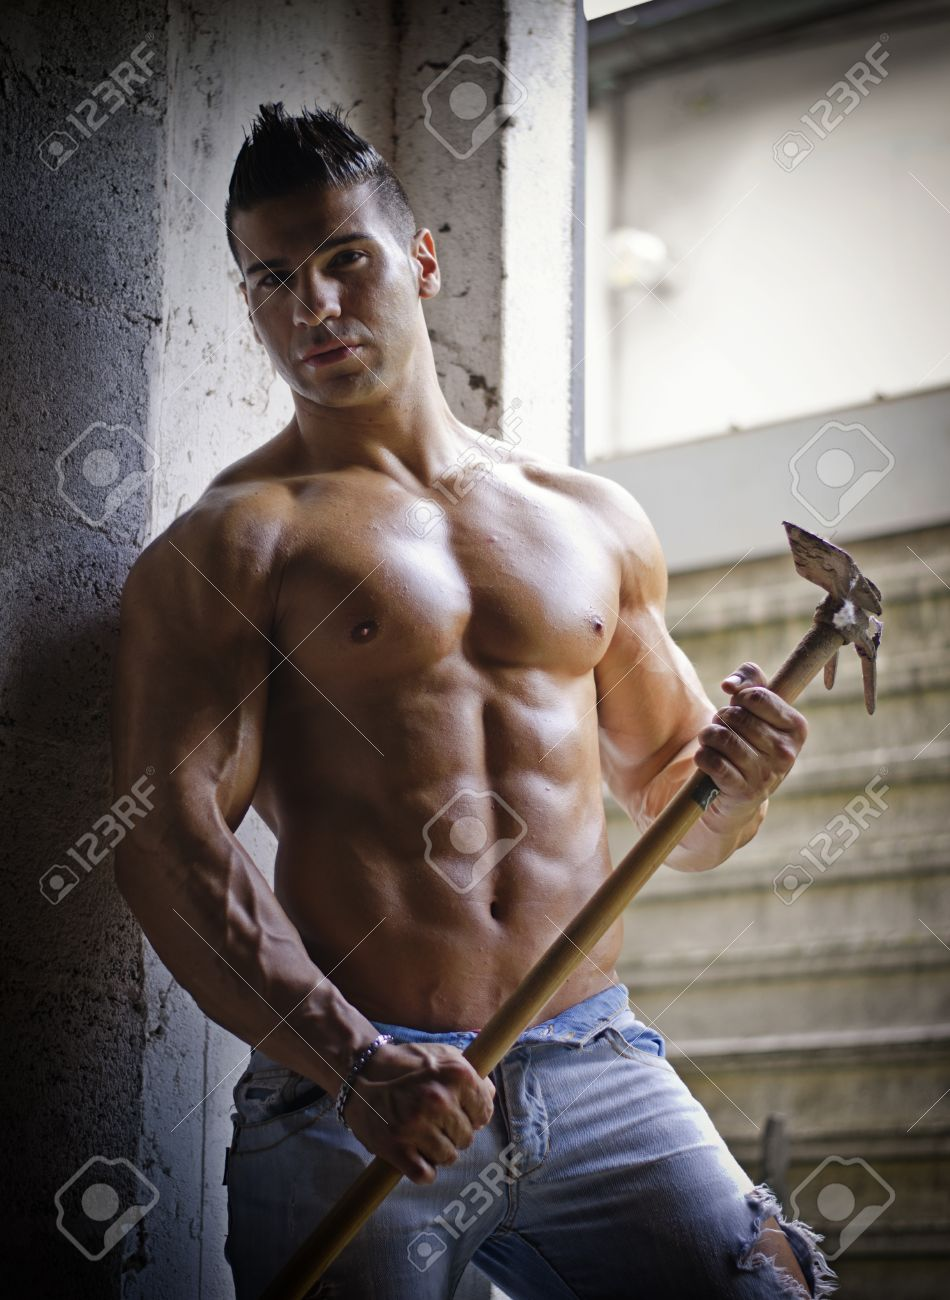 549efefd2a5f Muscular Shirtless Young Man Holding Farming Tool In His Hands ...